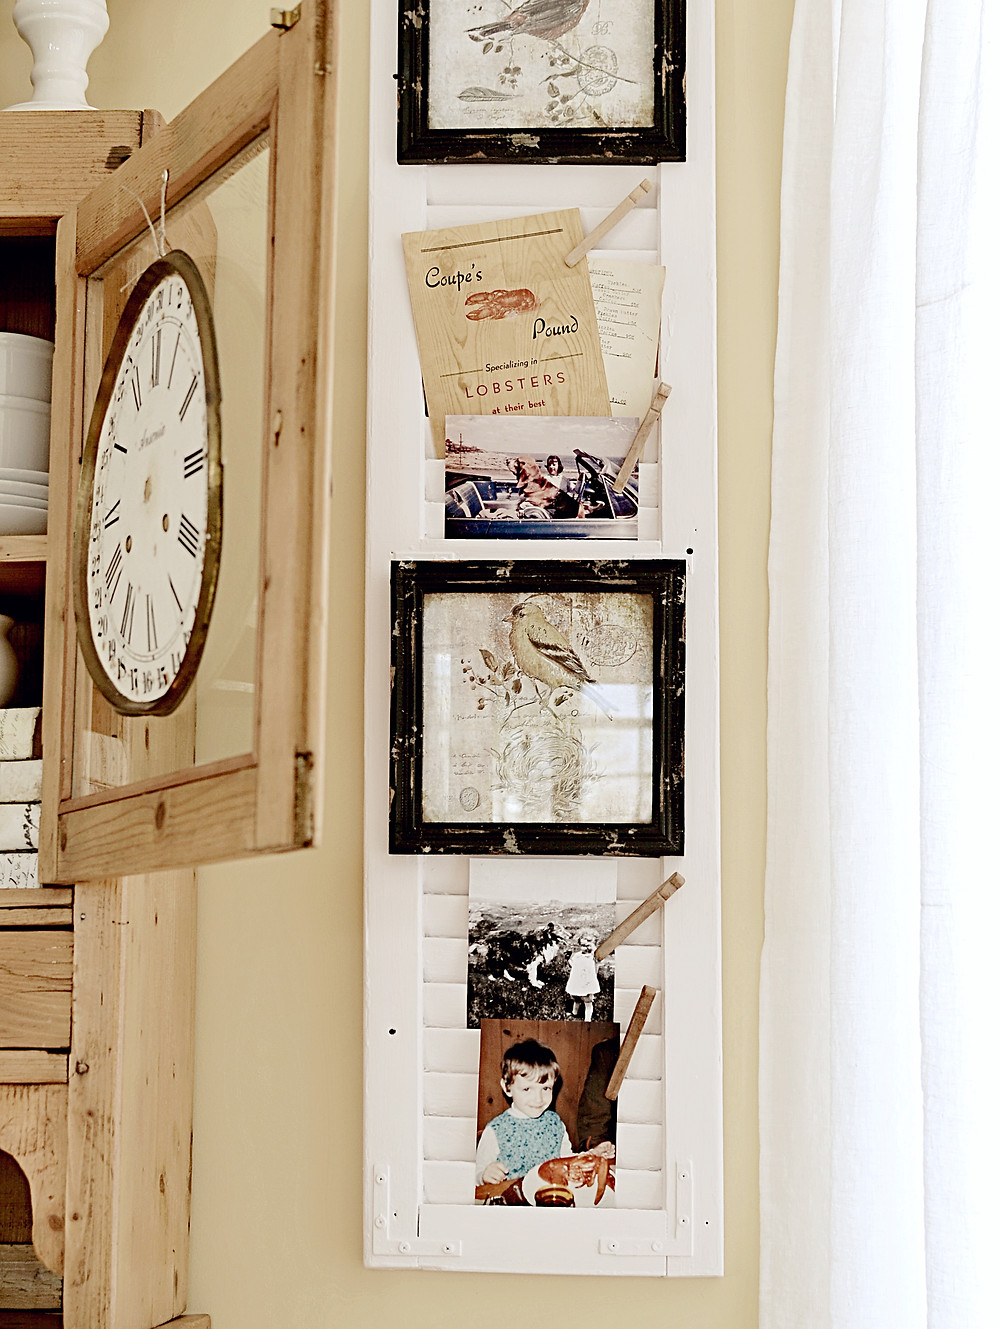 Vintage painted shutter with nostalgia and vintage family photos next to vintage clock face on vintage dining hutch.